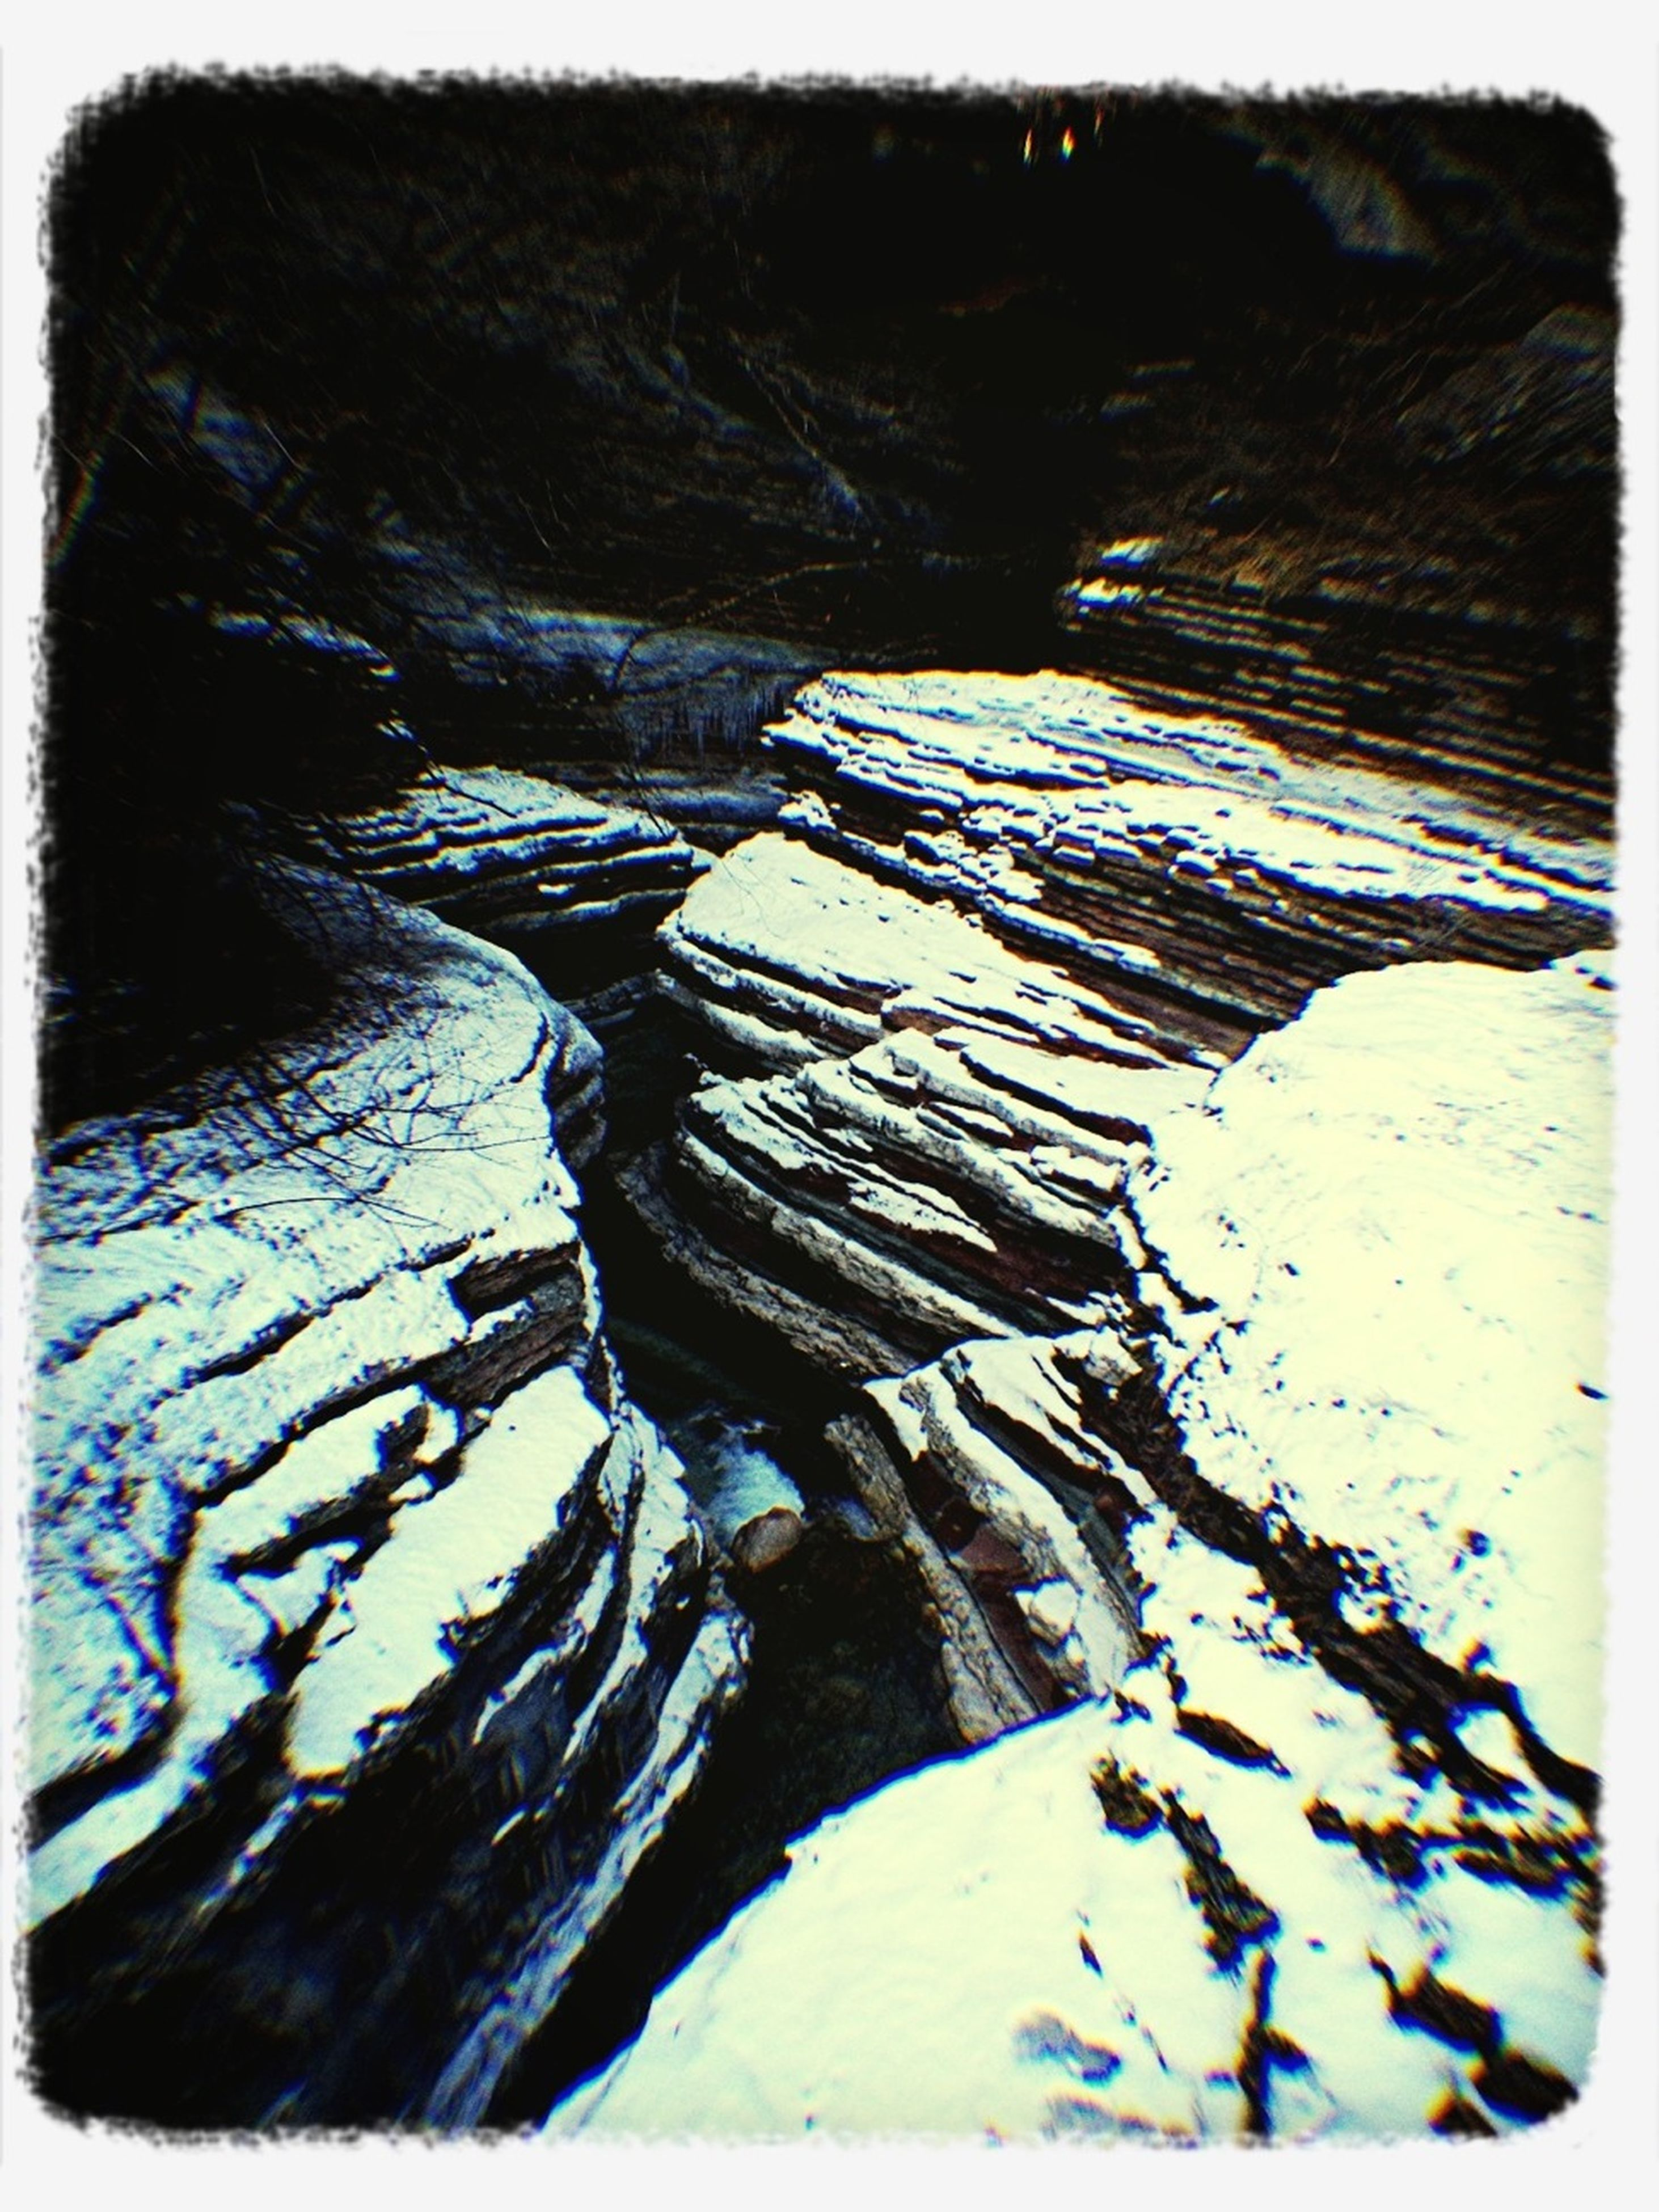 transfer print, auto post production filter, tranquility, rock - object, nature, rock formation, tranquil scene, beauty in nature, water, scenics, outdoors, rock, day, high angle view, snow, no people, natural pattern, geology, non-urban scene, winter